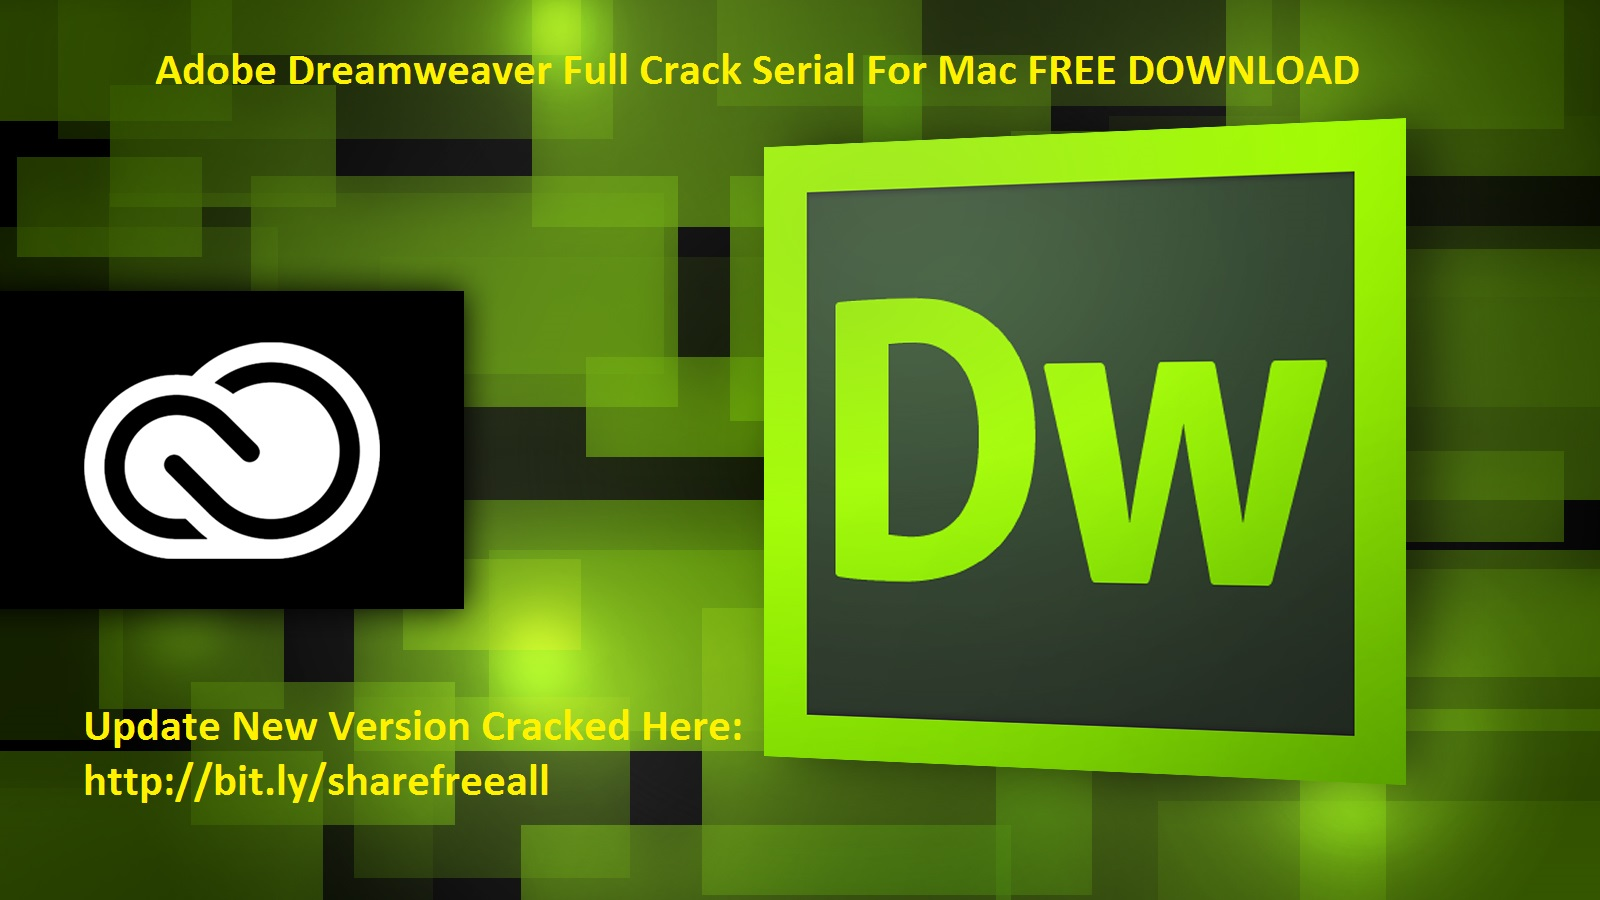 Adobe Dreamweaver CC 2015 Keygen Serial Number For Mac OS X Free Download